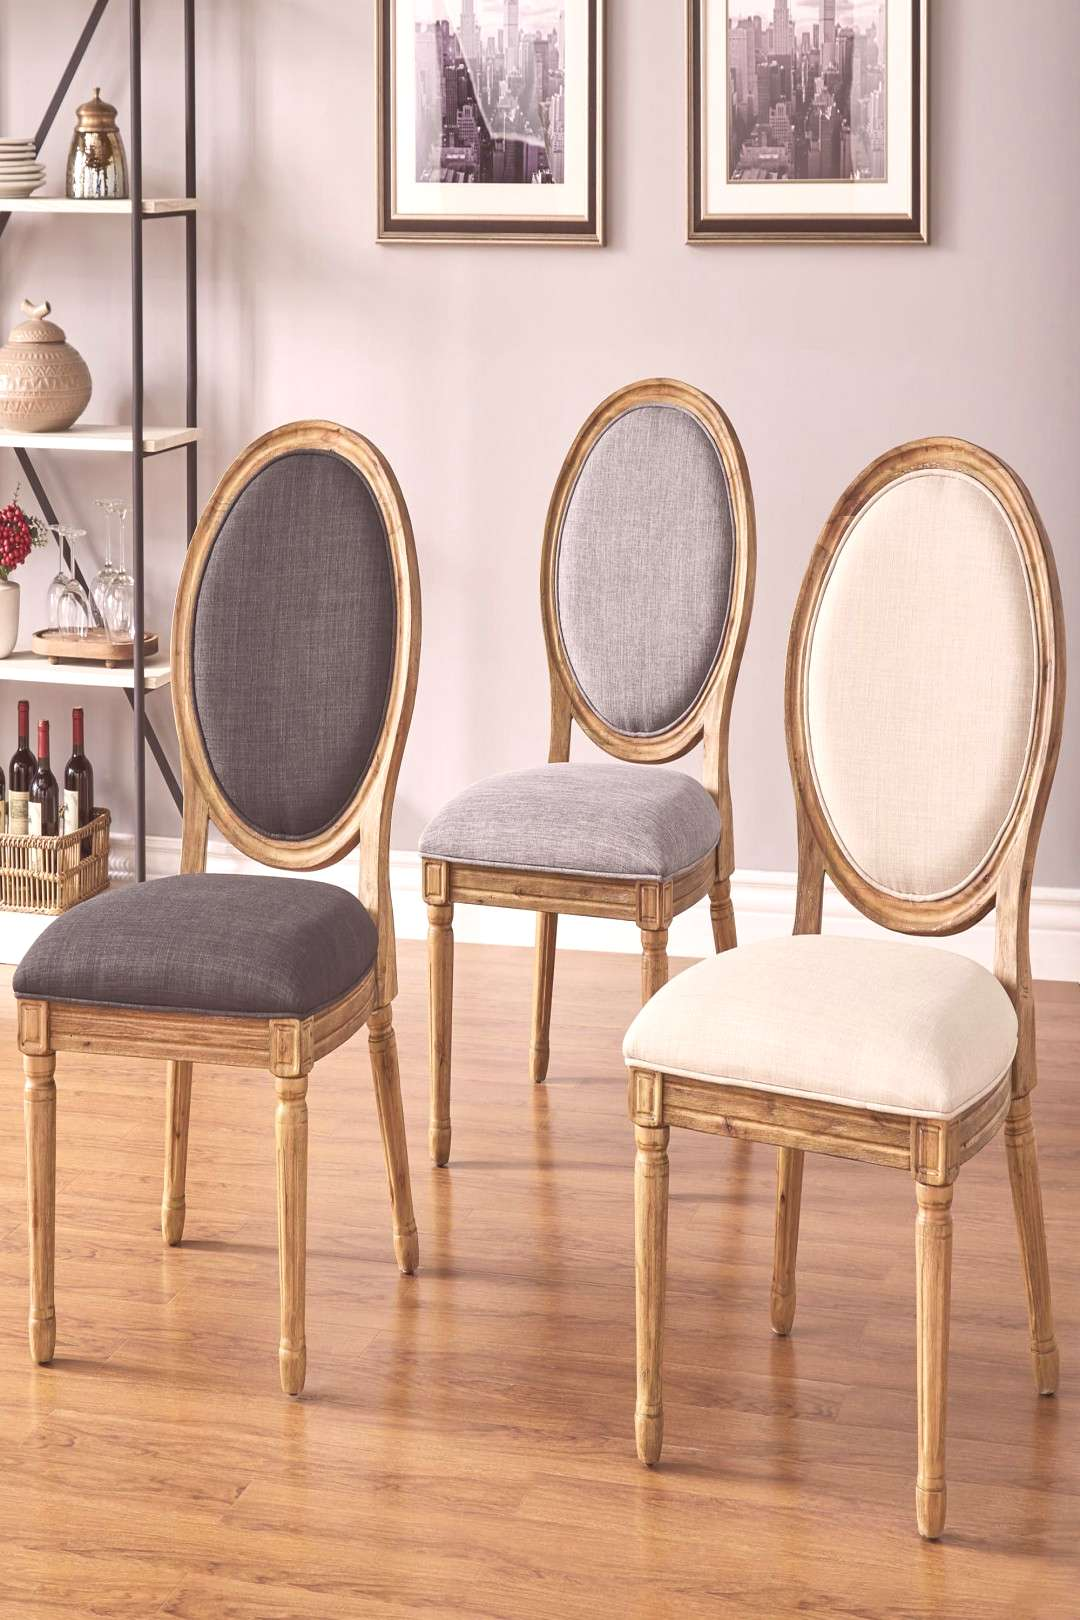 Buy Kitchen amp Dining Room Chairs Online at   Our Best Dining Room amp Bar Furniture Deals